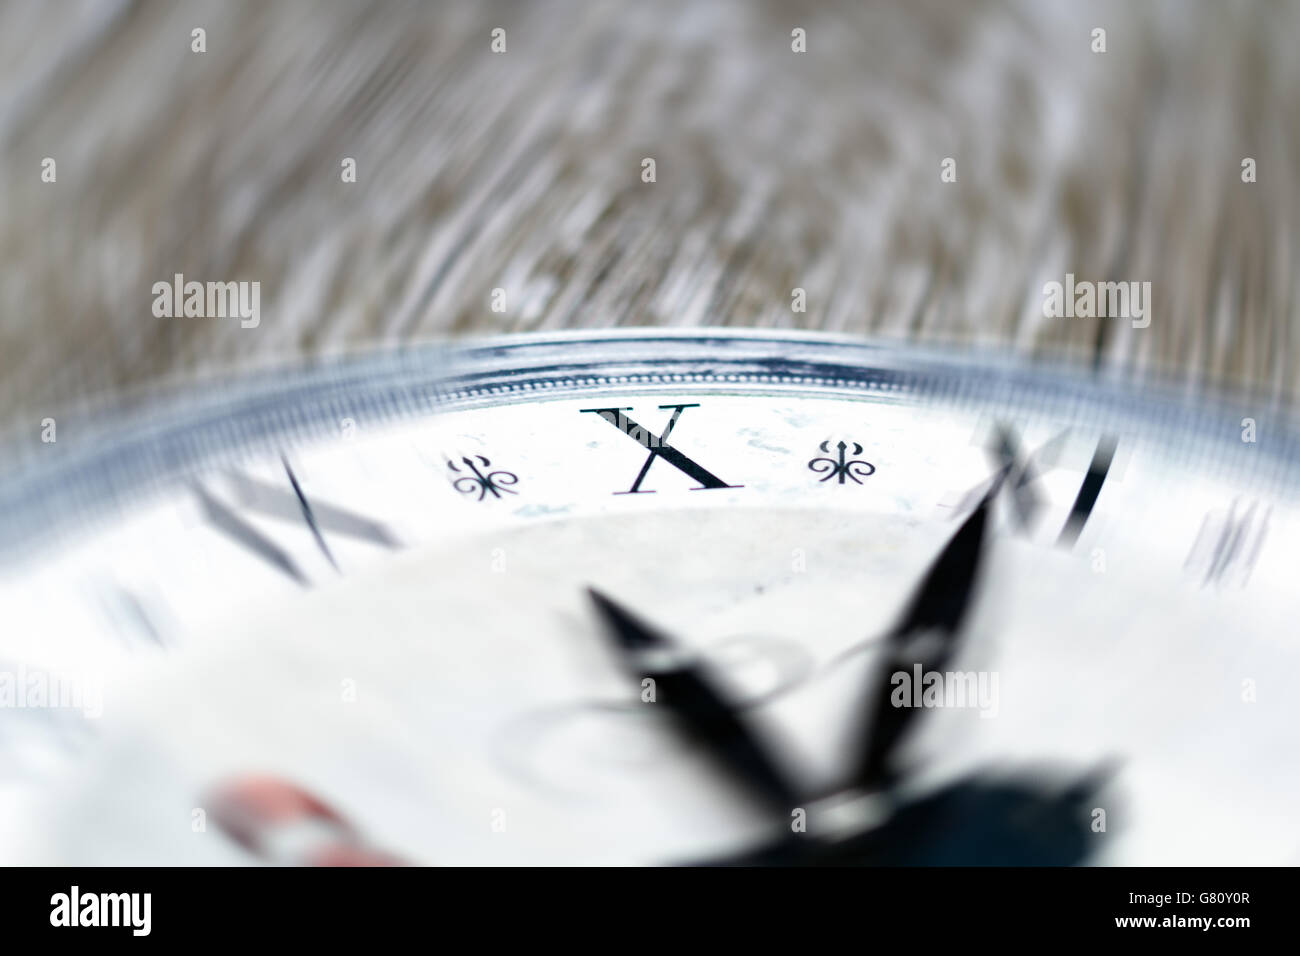 various numbers shown on vintage clock surface - Stock Image